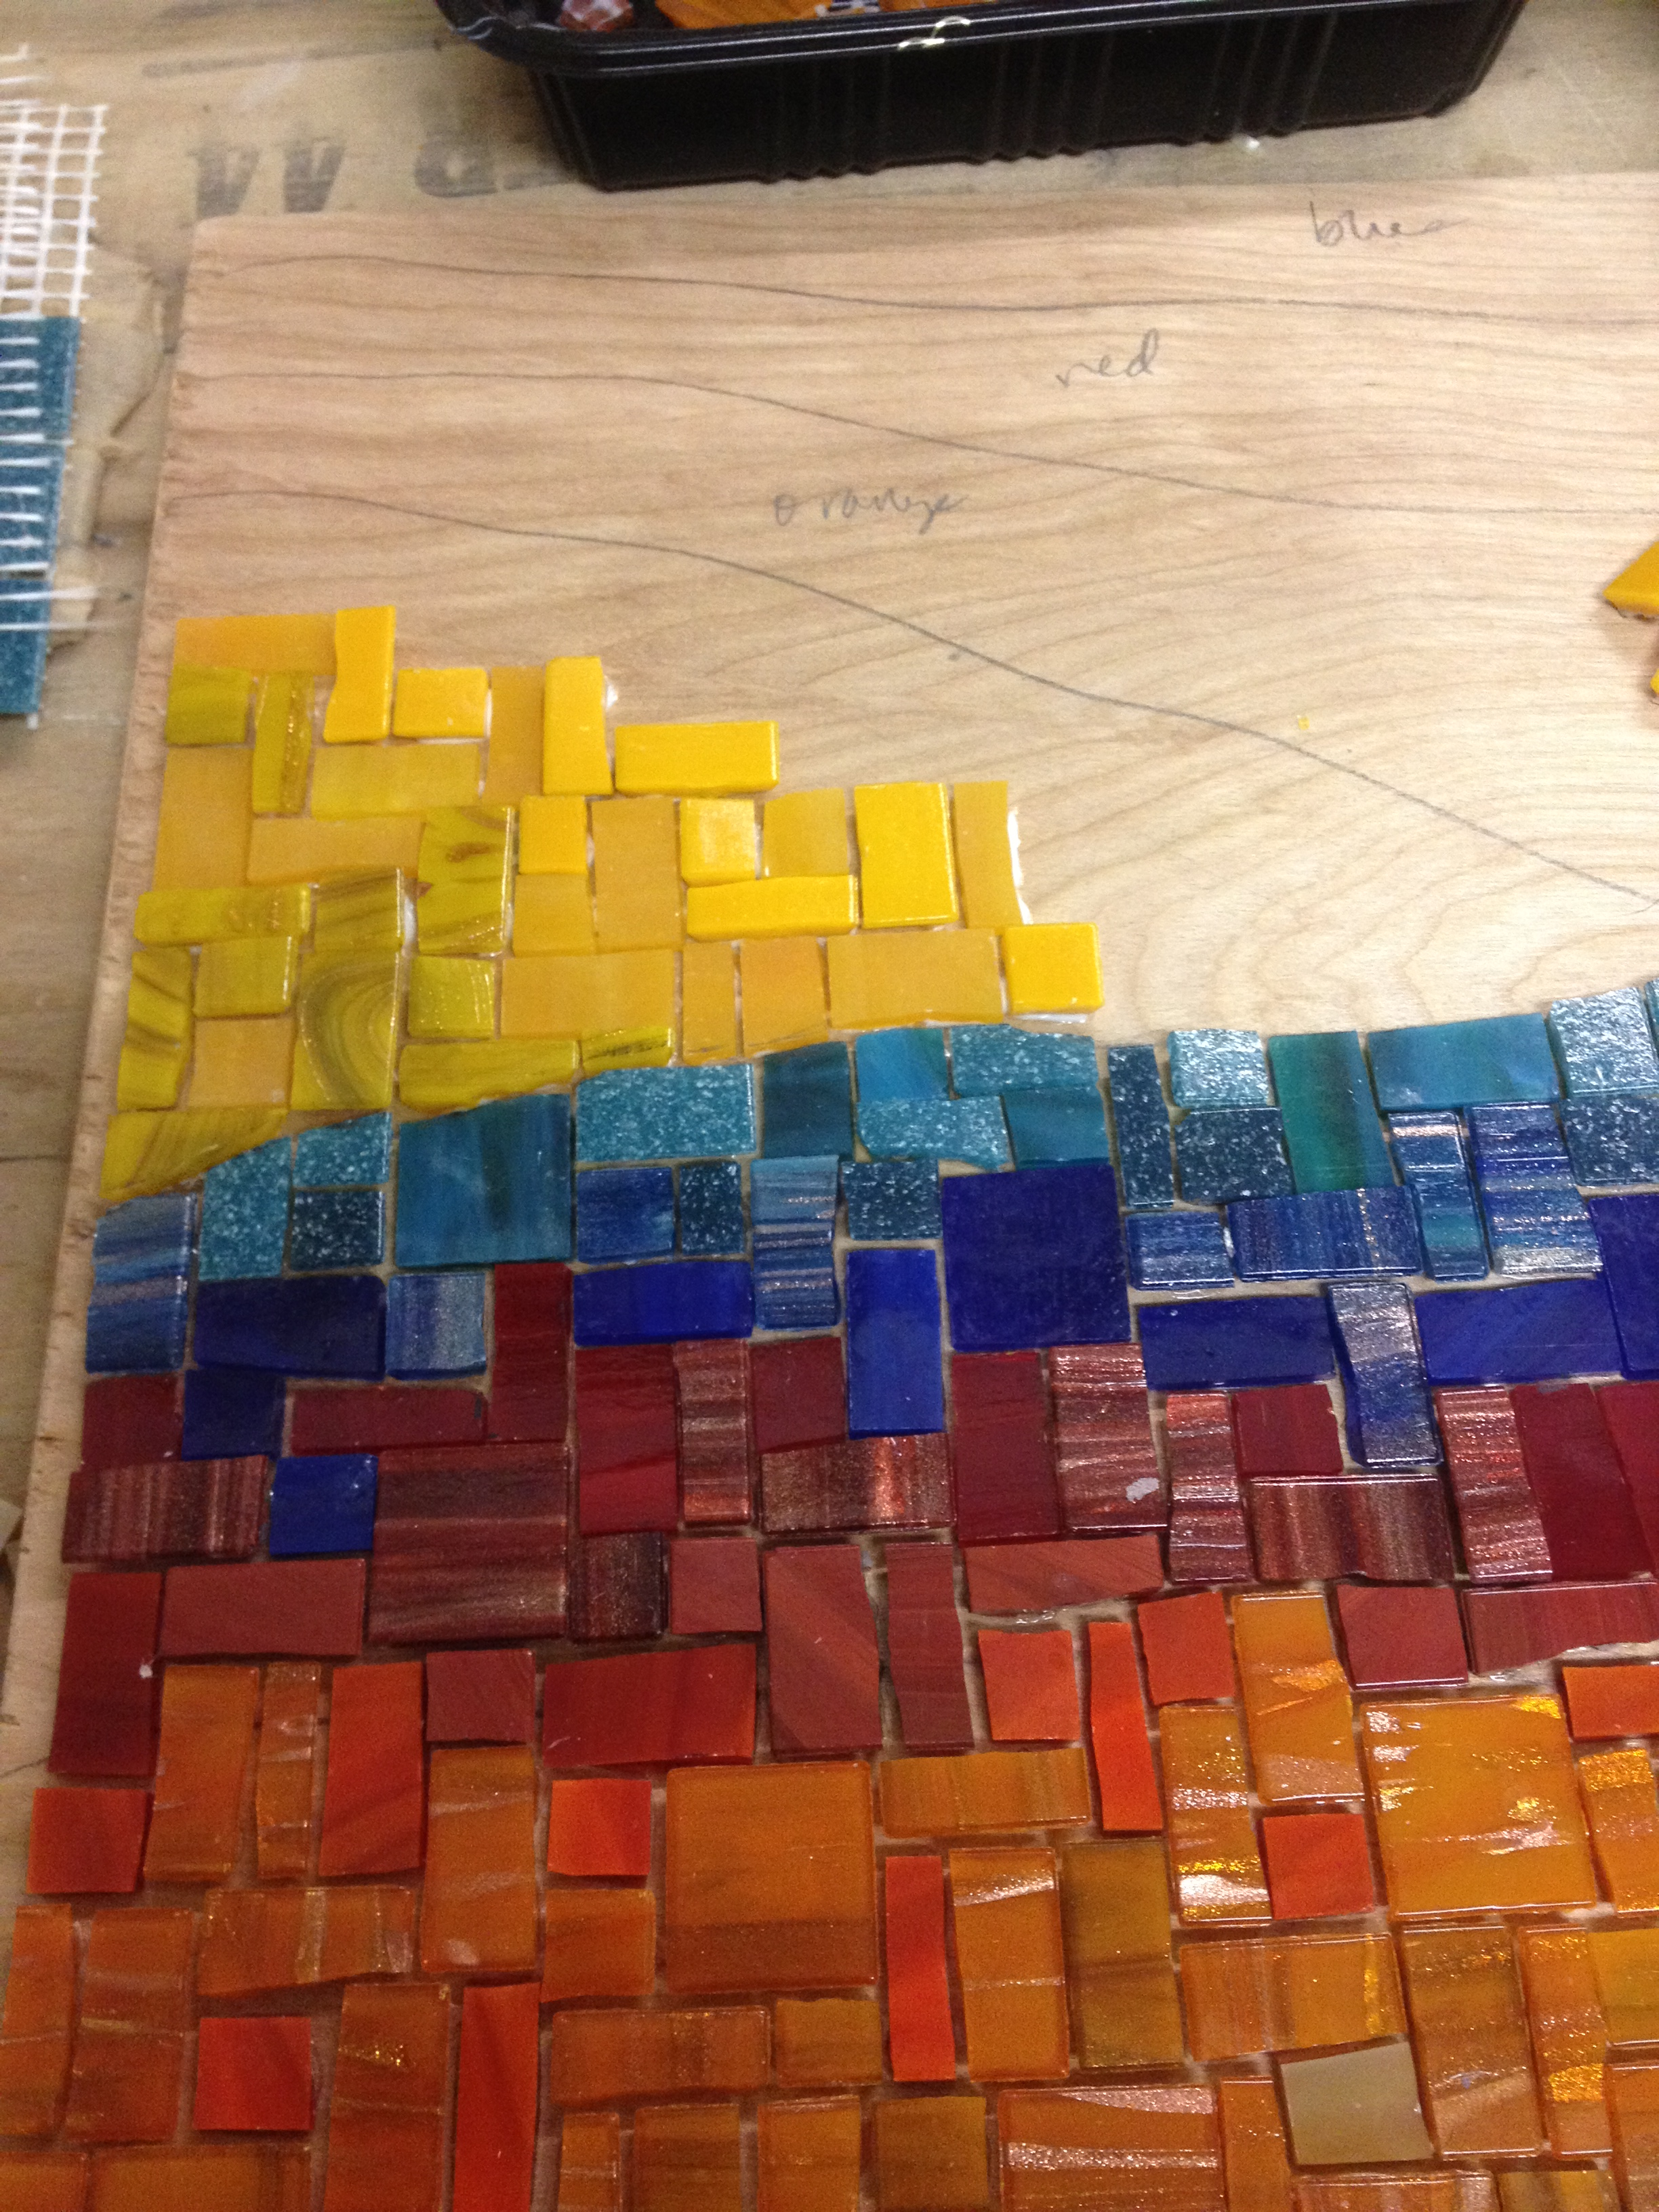 Almost done gluing the mosaic.